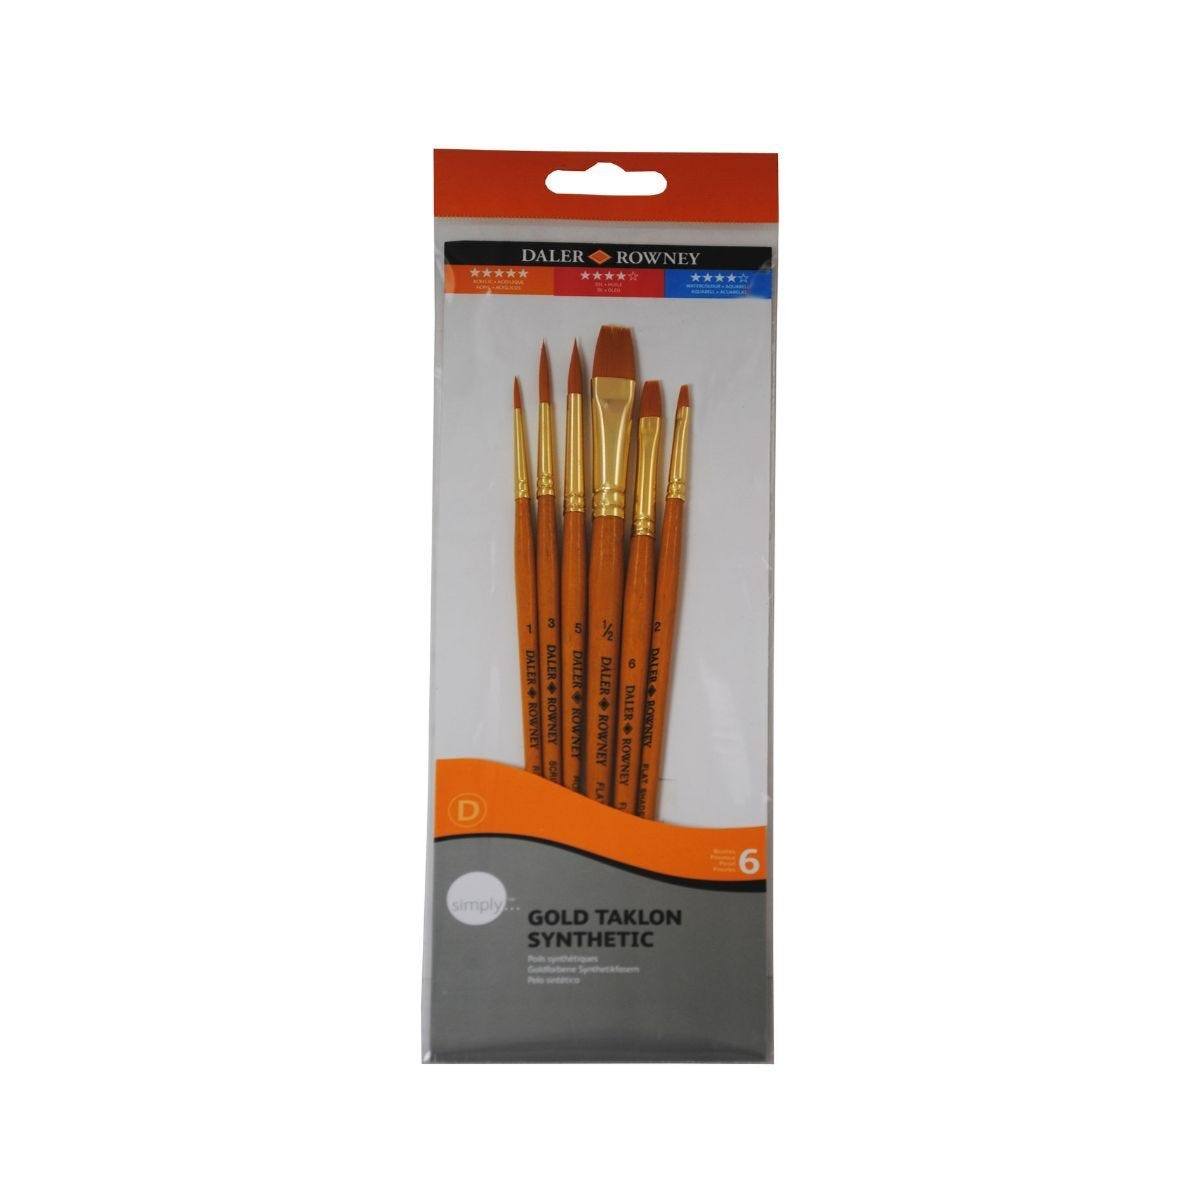 Daler Rowney Simply Gold Taklon Synthetic Brushes Pack of 6